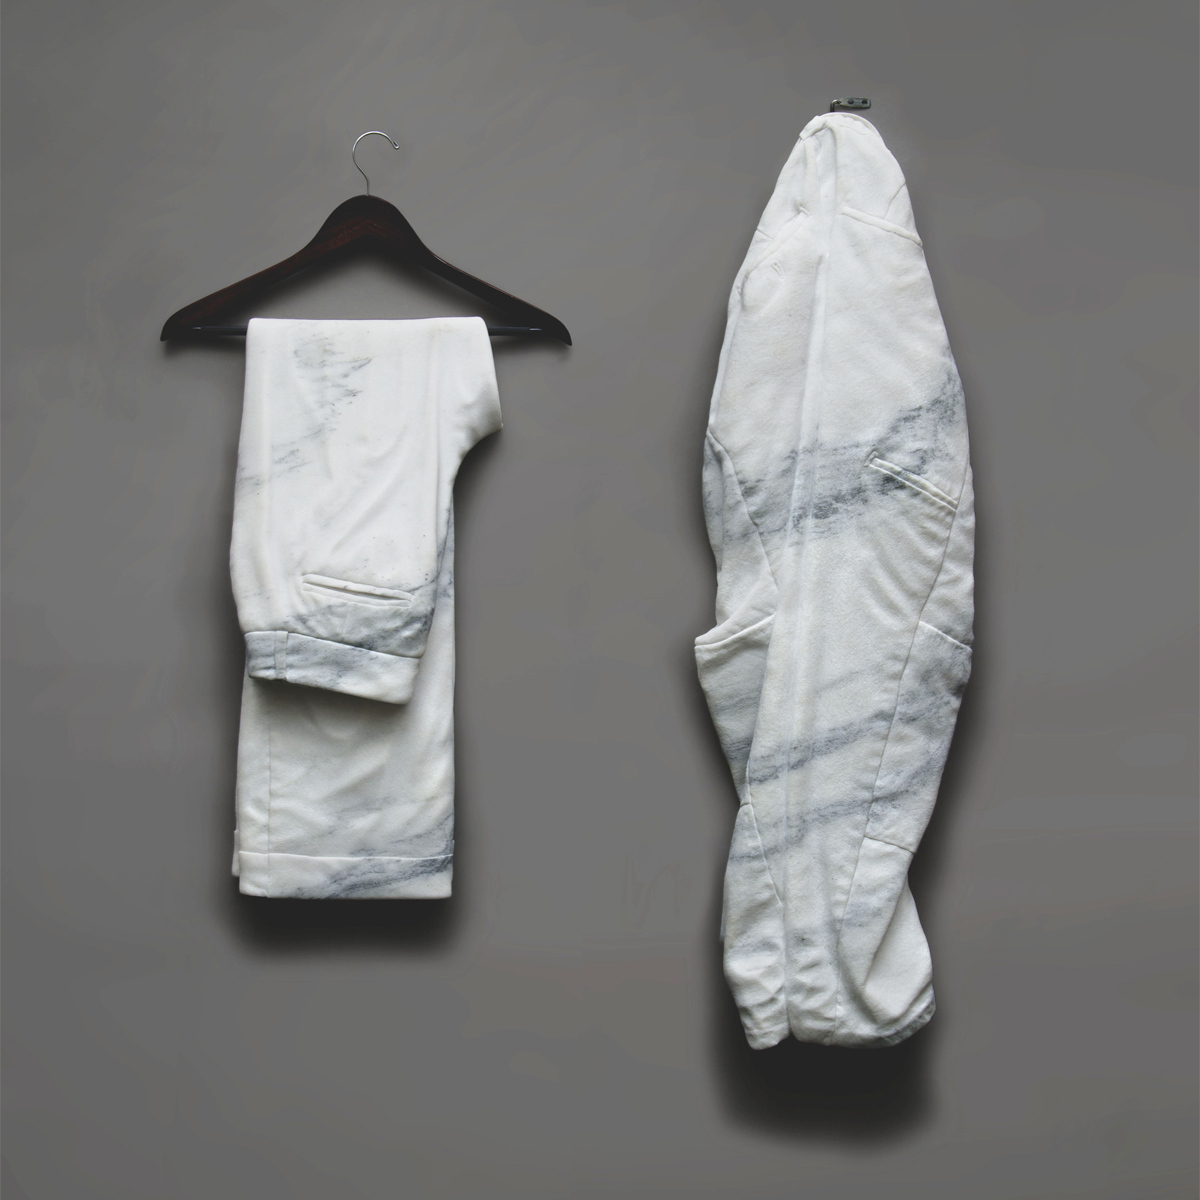 We Both Wear Pants, marble, 43 x 36 x 4 in.